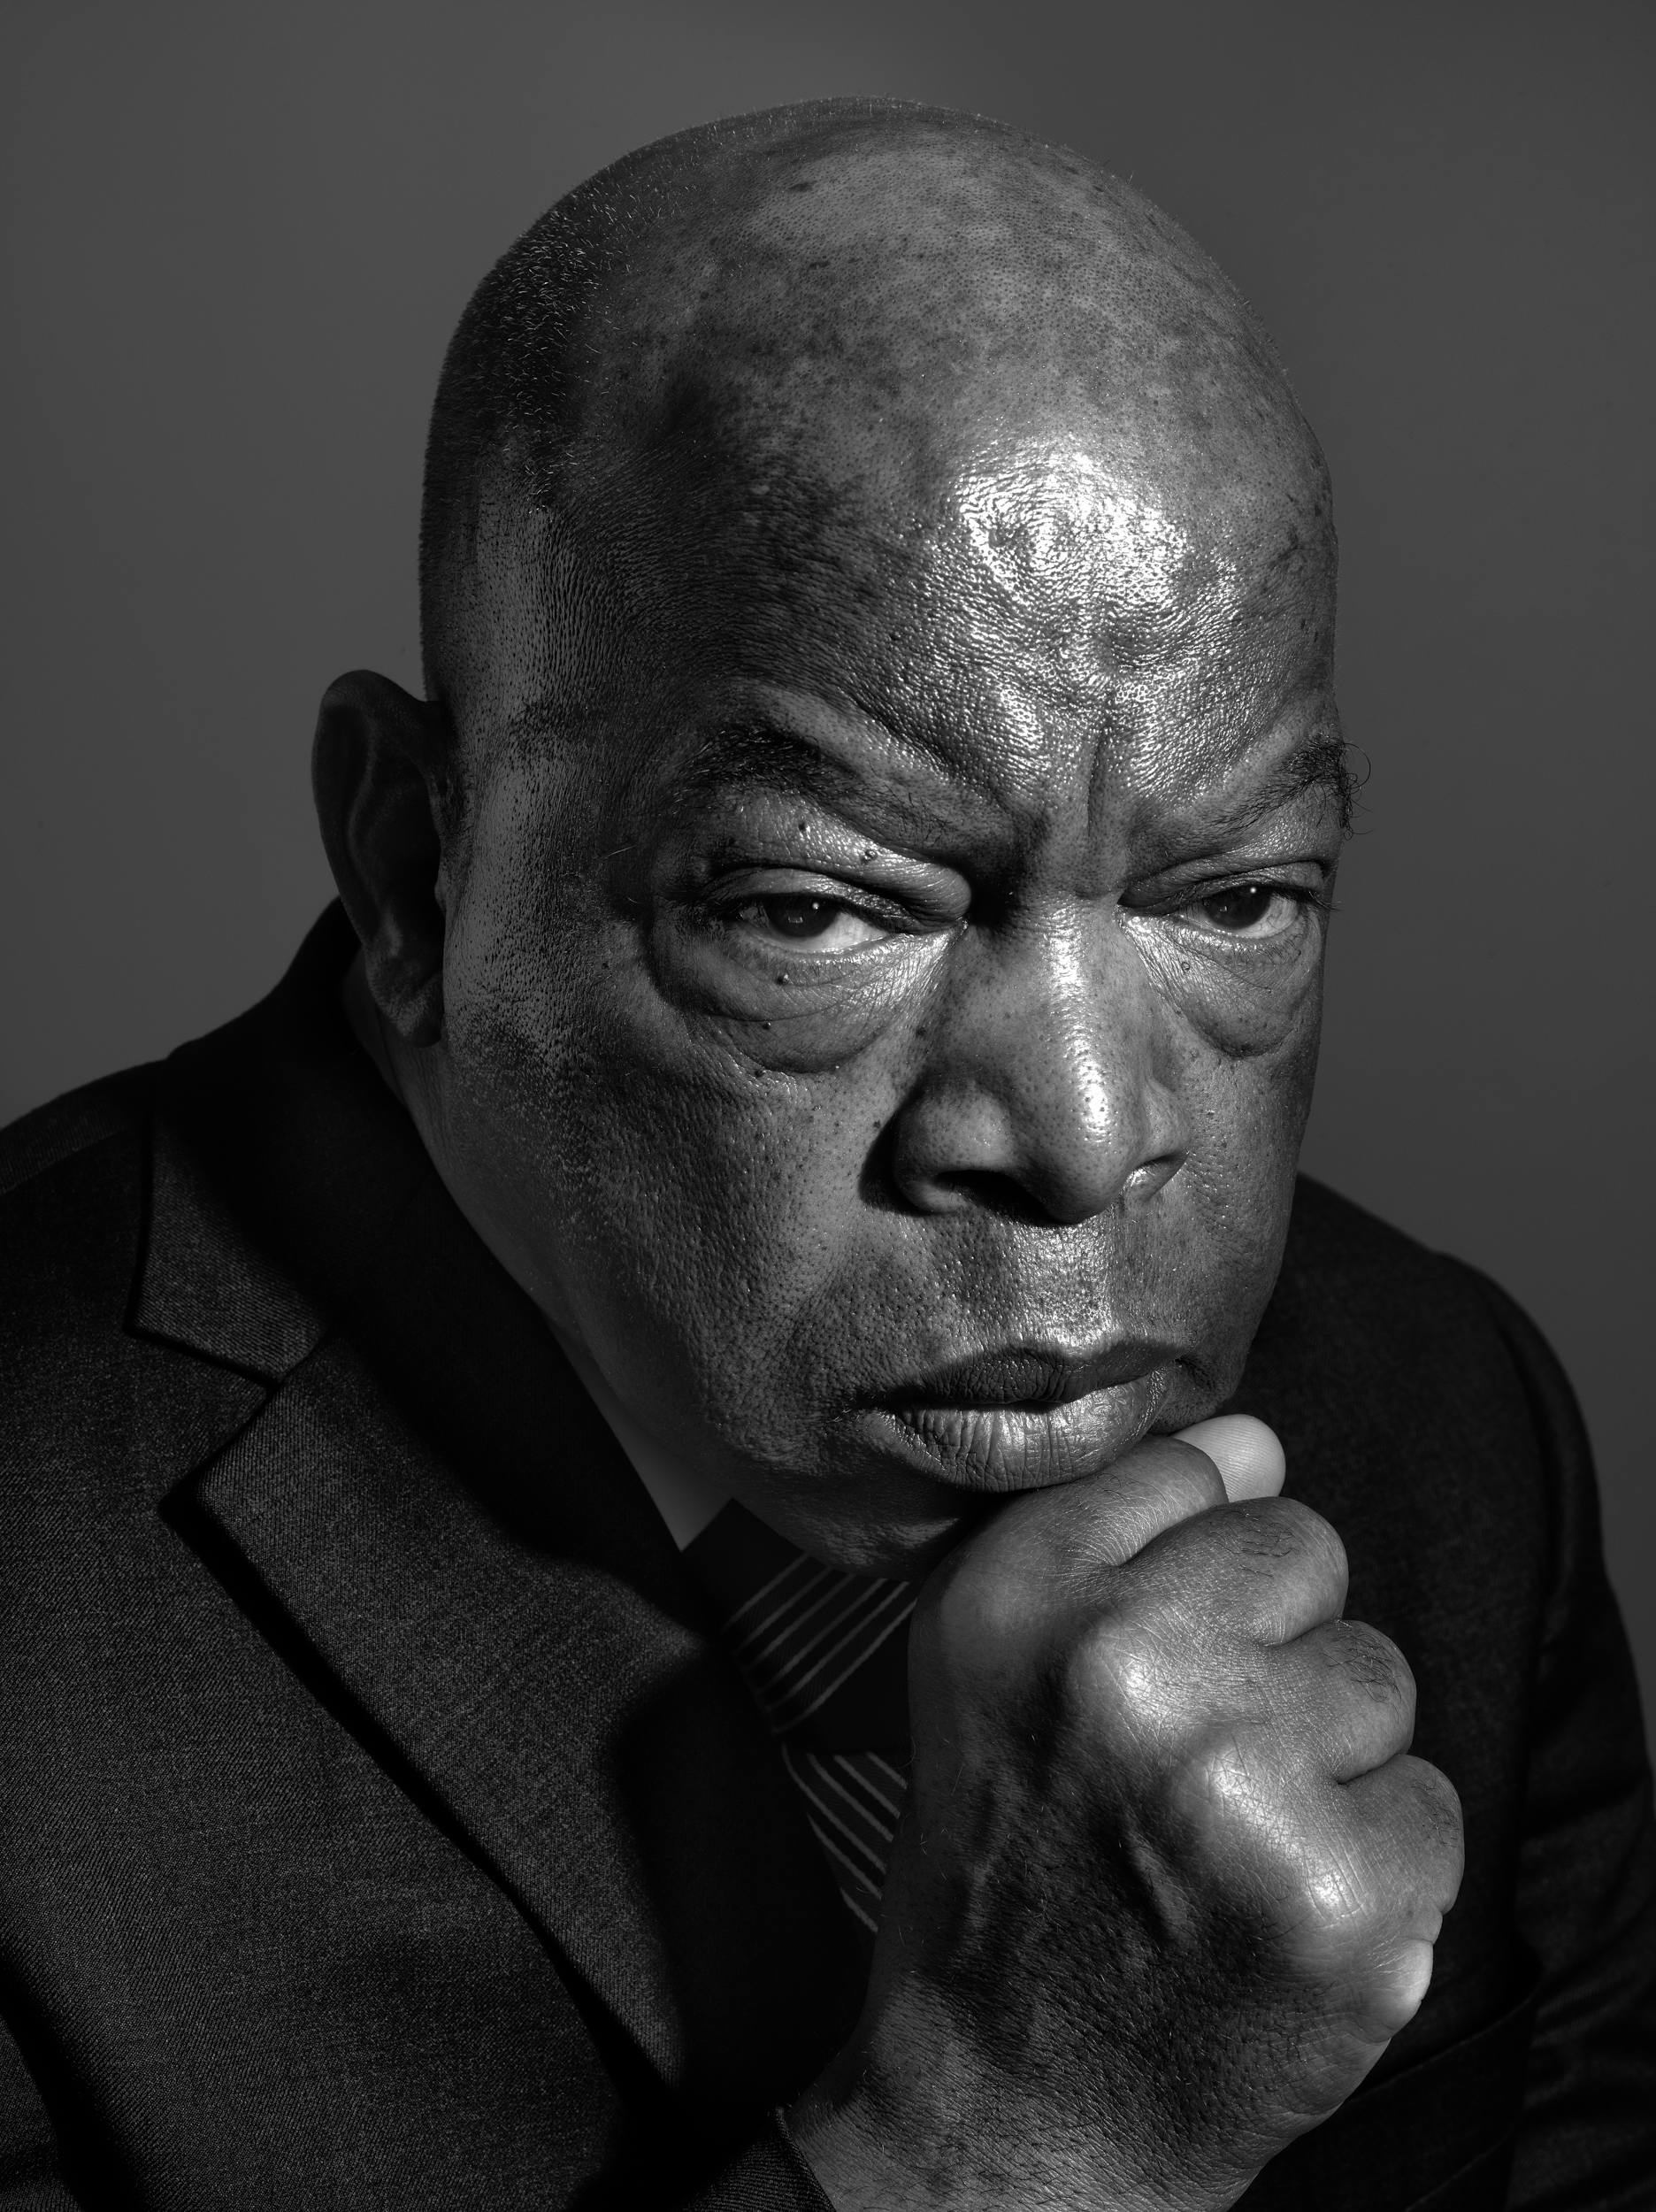 Civil rights leader Rep. John Lewis in 2013.